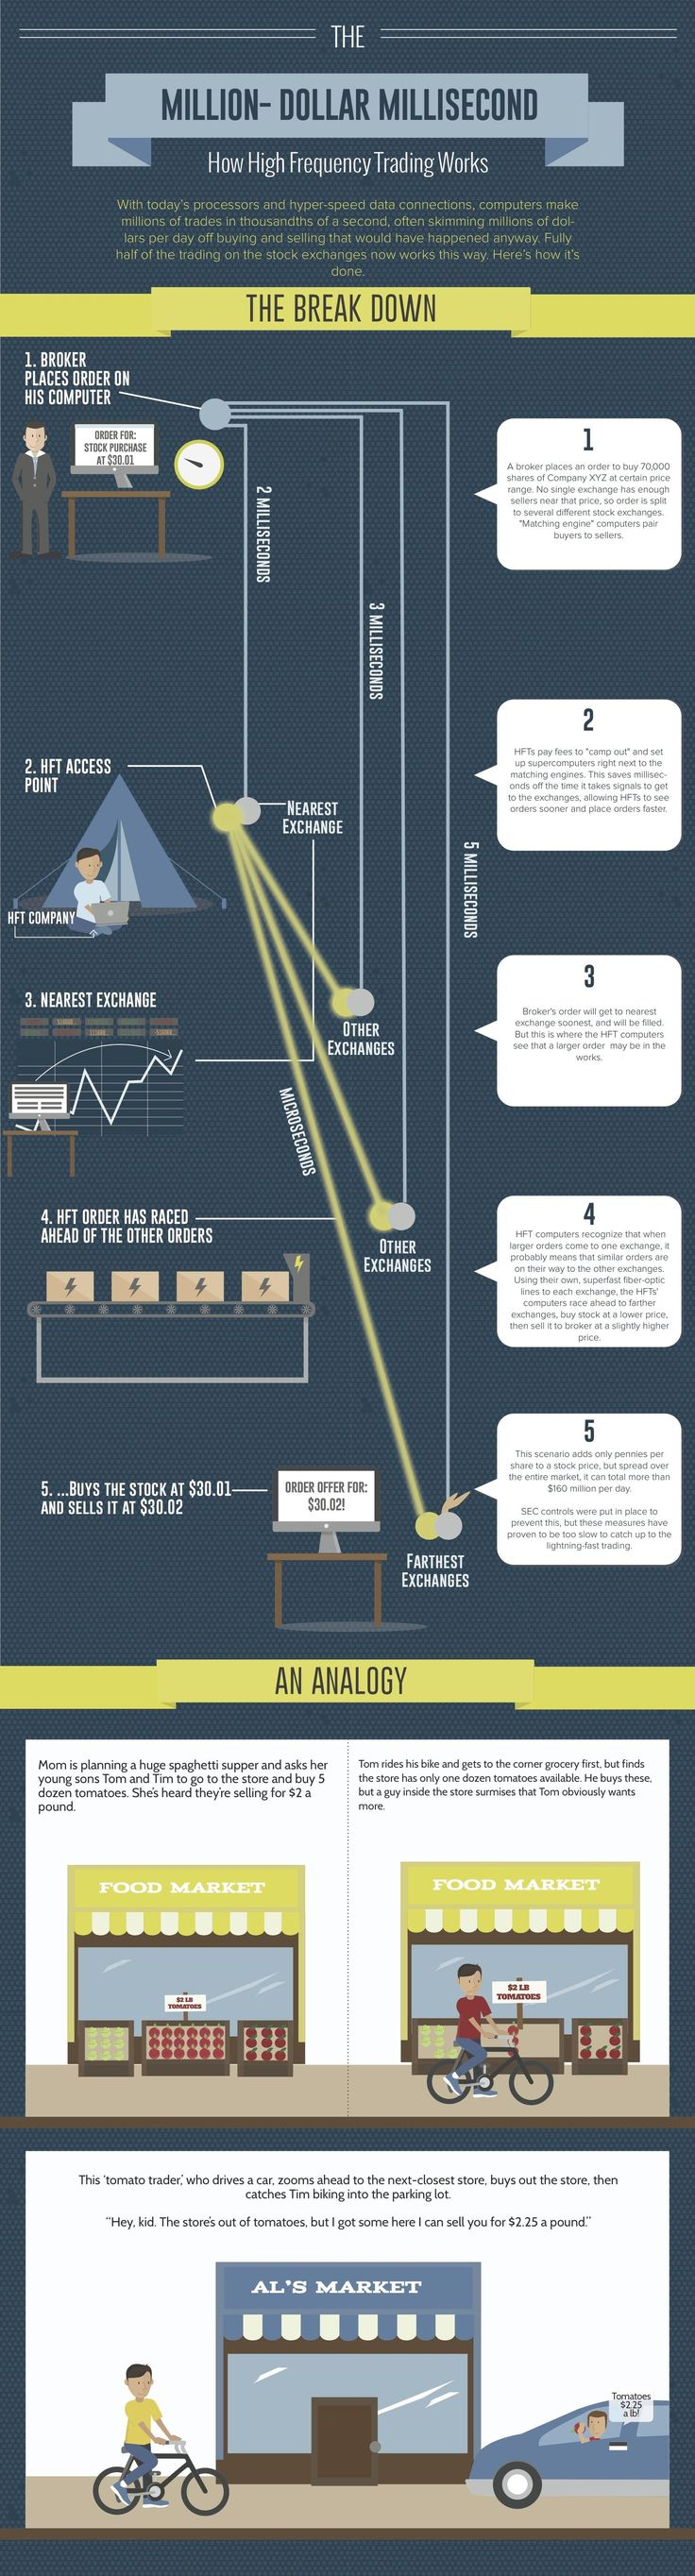 """How High Frequency Trading Works: Some say it rigs the markets in favor of the big guys. Others say it makes the stock markets operate more efficiently. But how does high frequency trading really work?"""